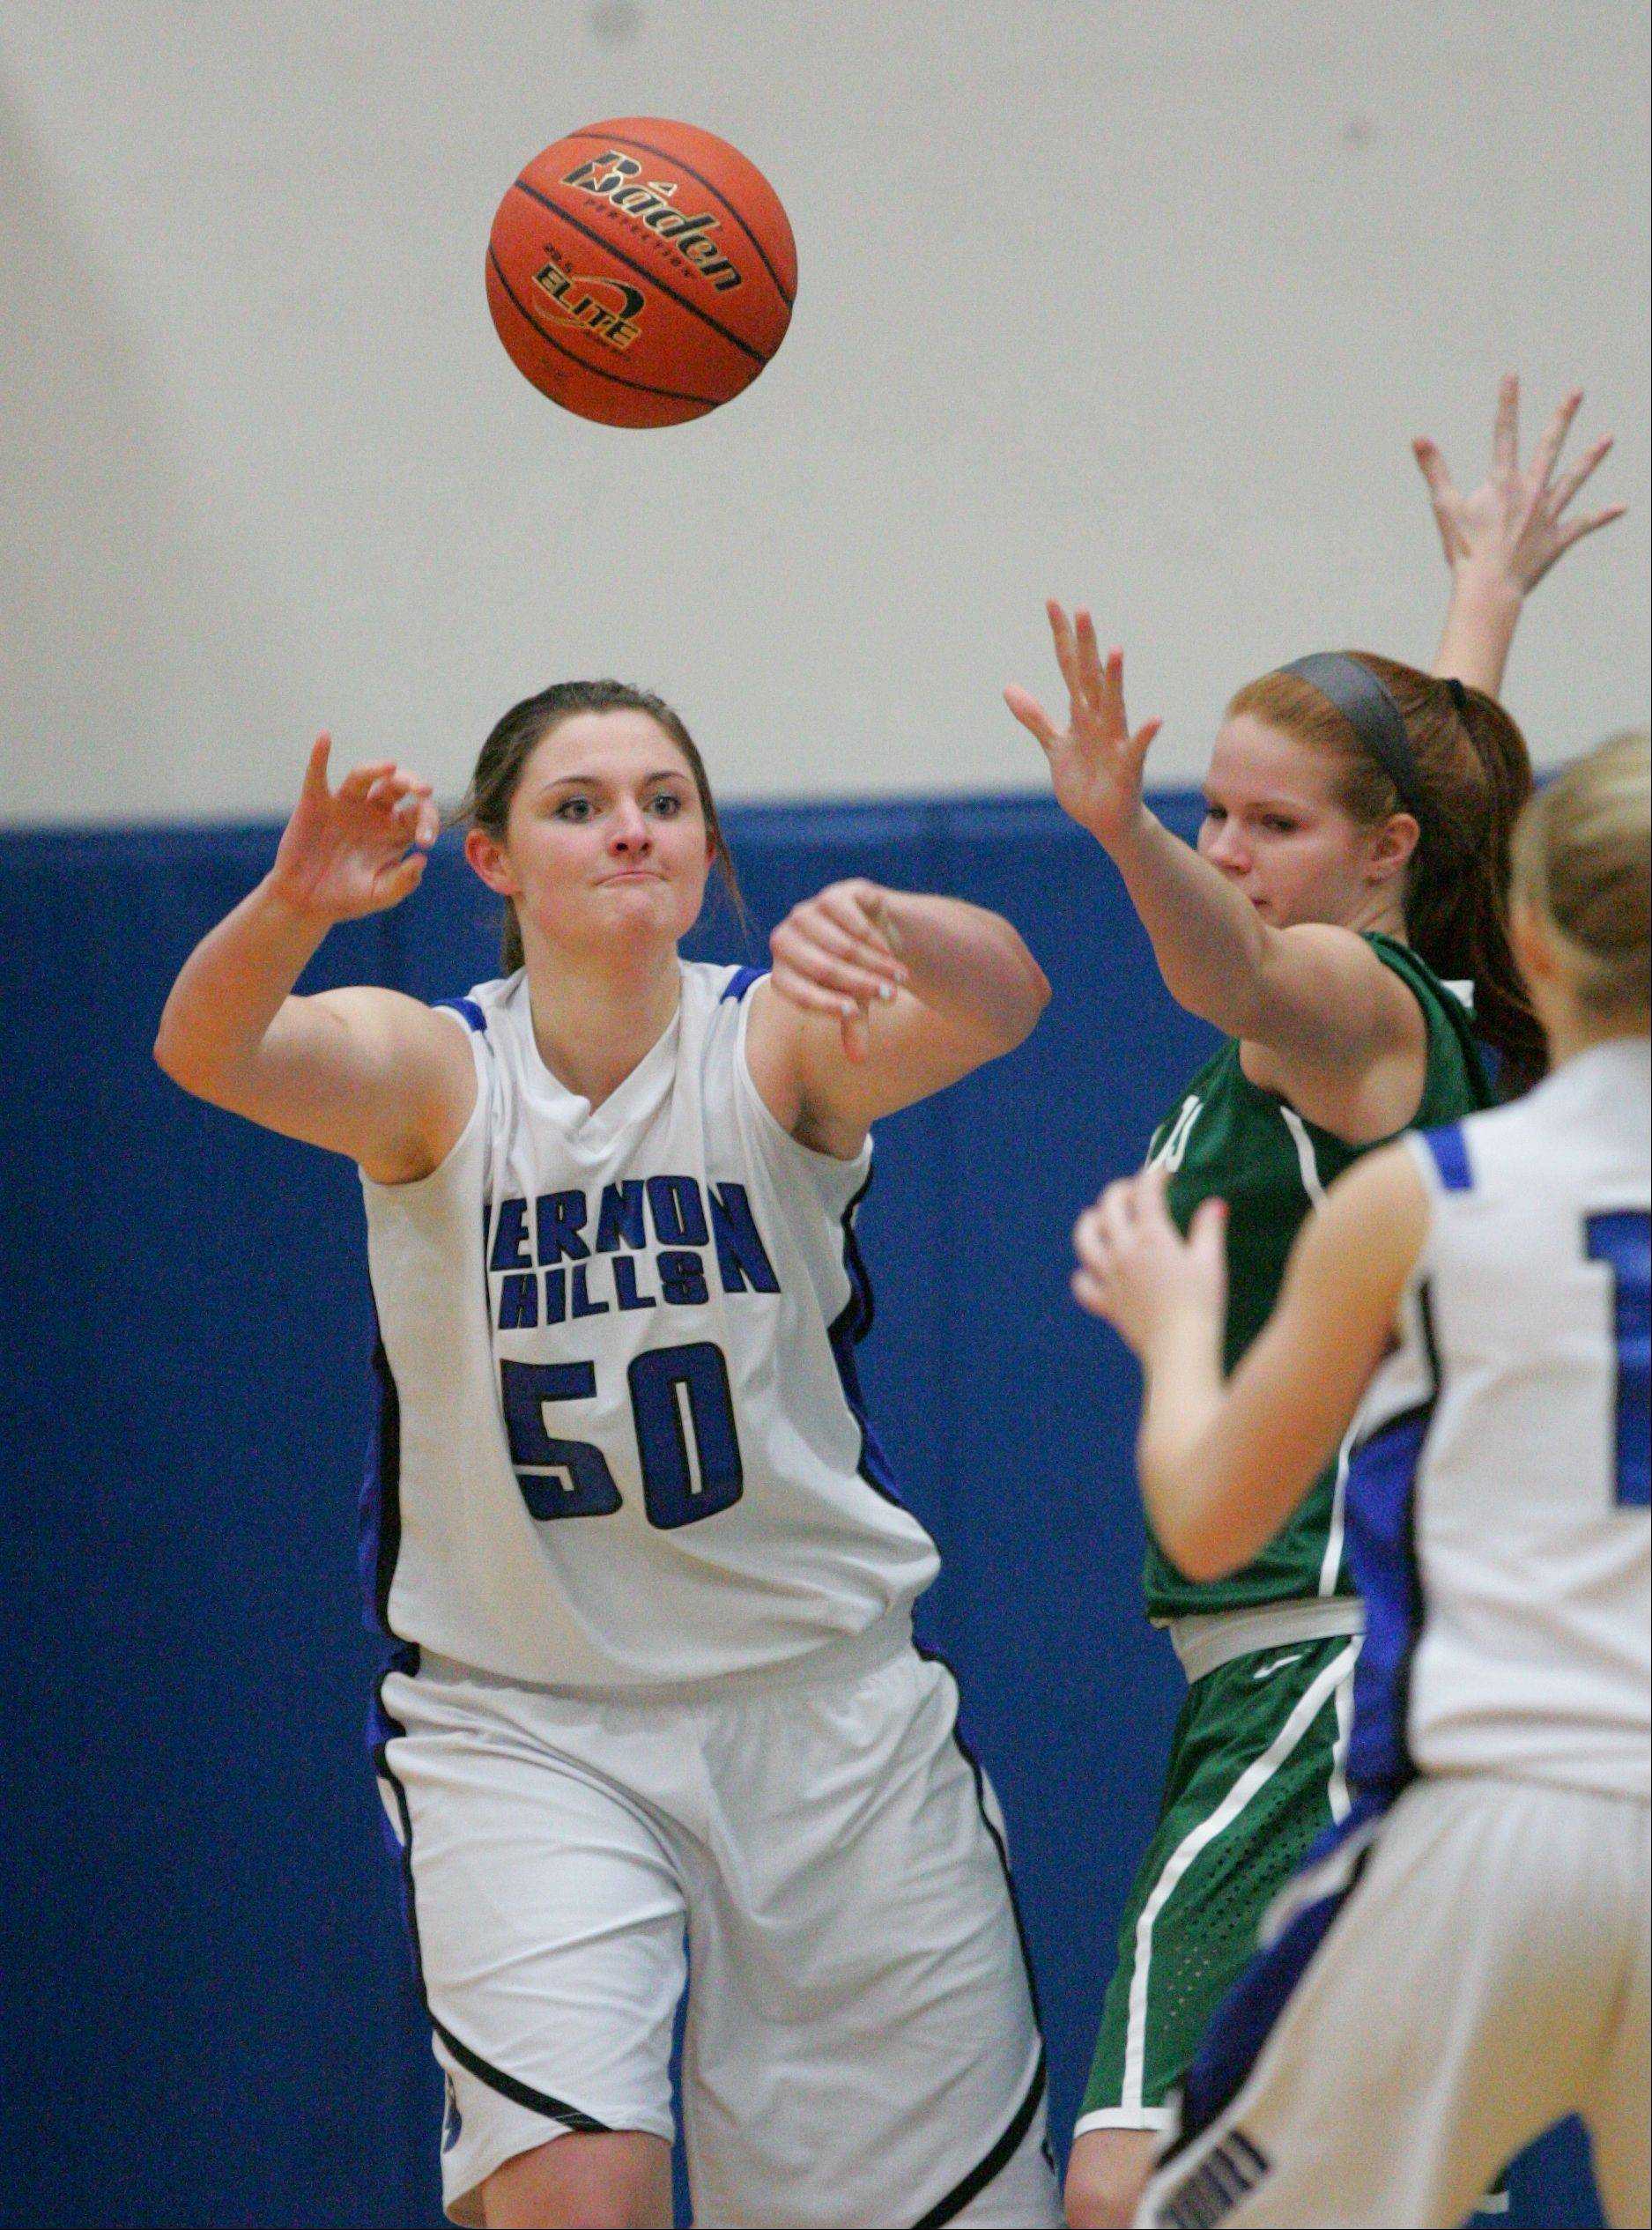 Images from the Grayslake Central at Vernon Hills girls basketball game Tuesday, Nov. 27.